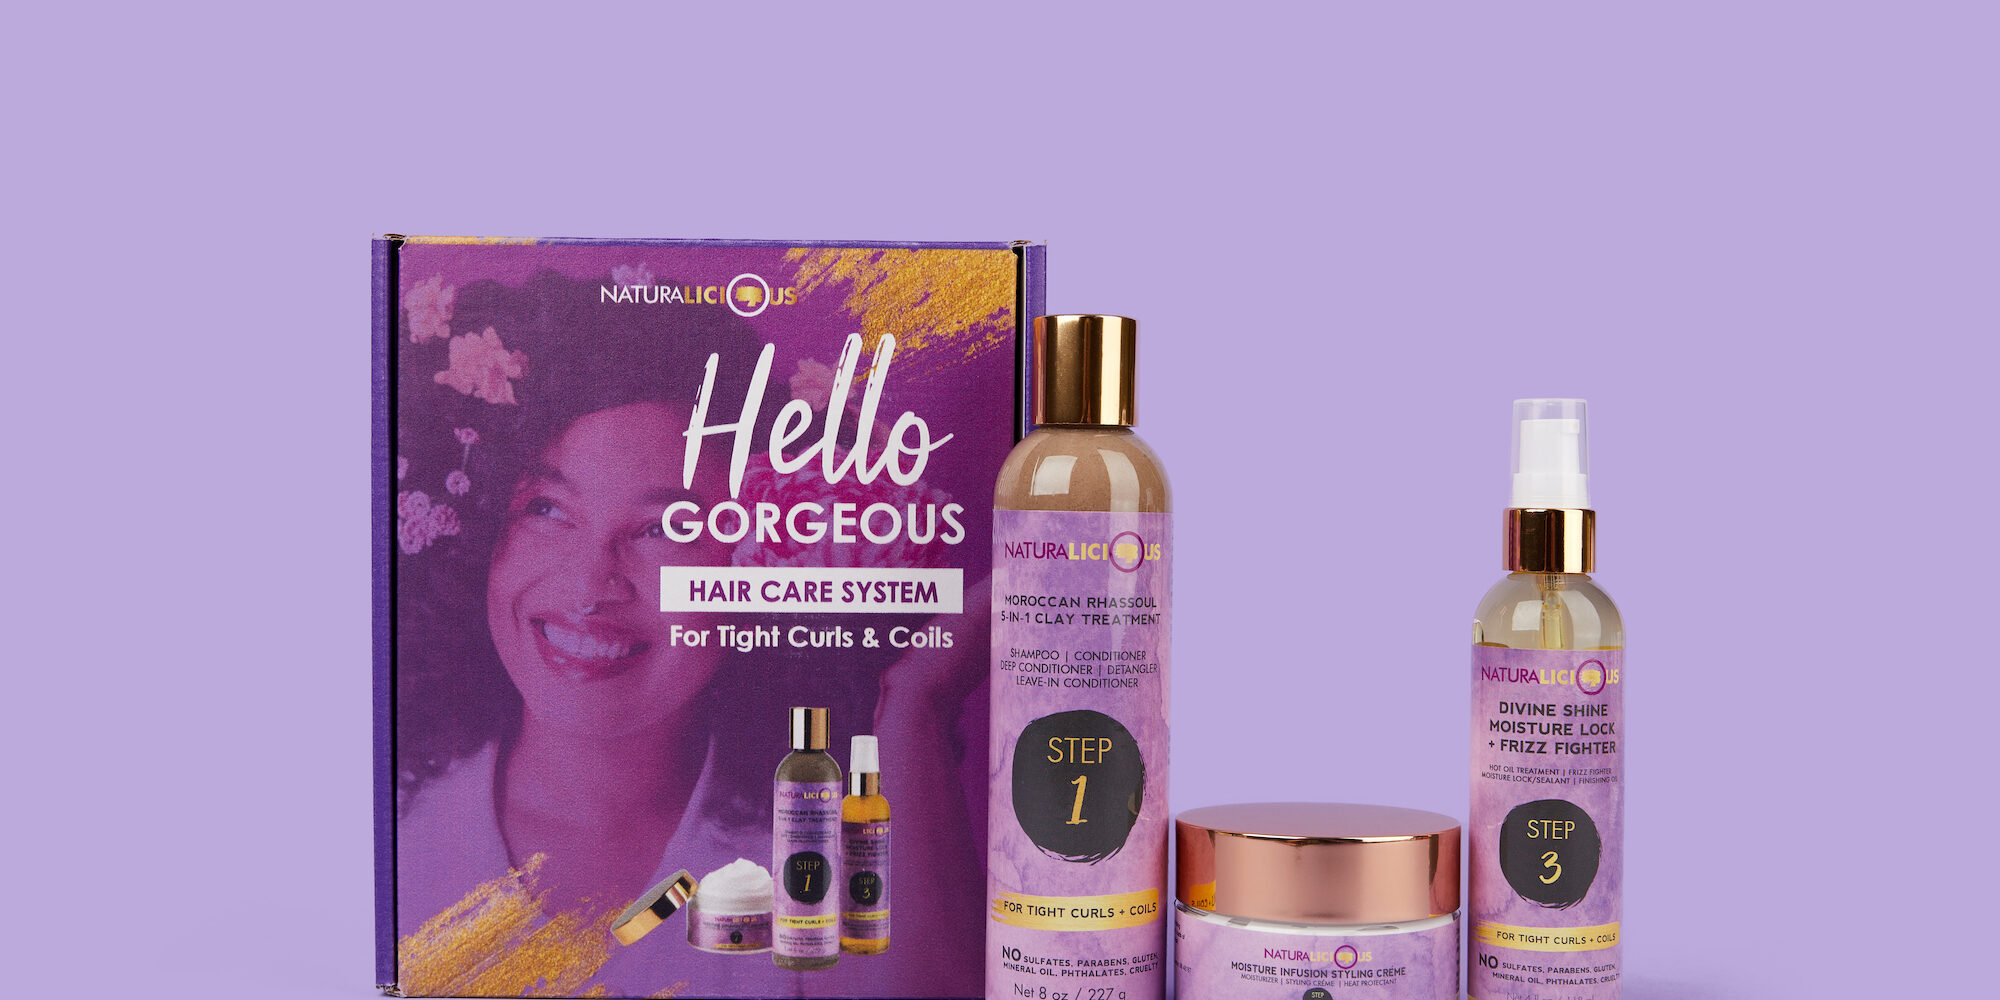 """""""We Really Sell Confidence"""": Naturalicious Founder Gwen Jimmere On Building A Million-Dollar Haircare Business"""